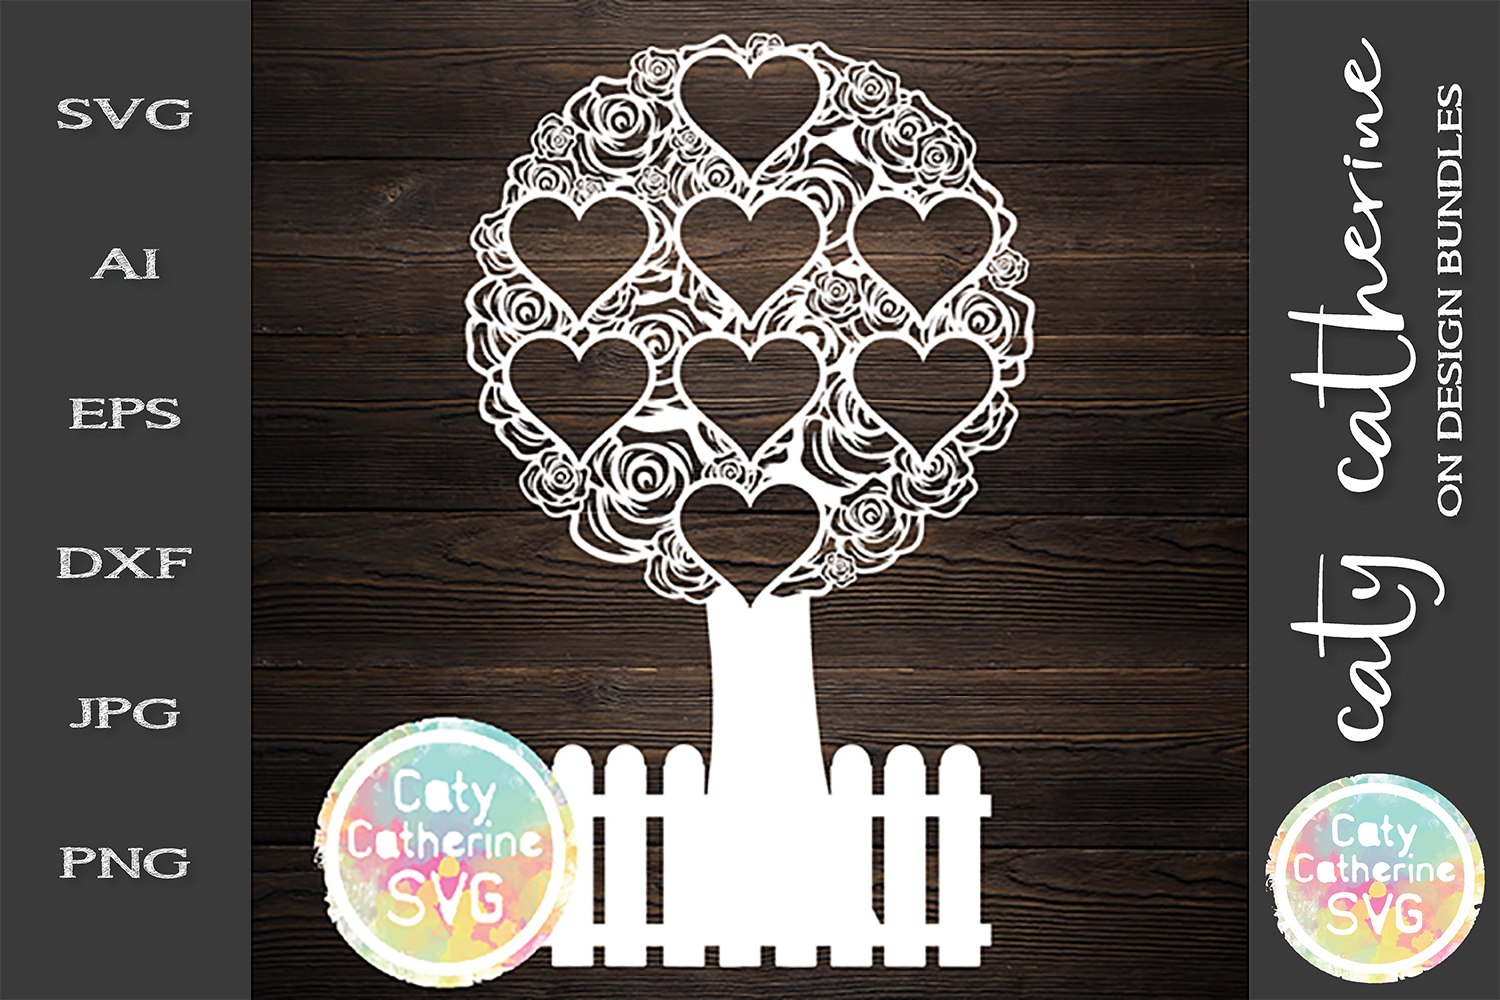 Rose Family Tree With Fence Eight Hearts SVG Cut File example image 1